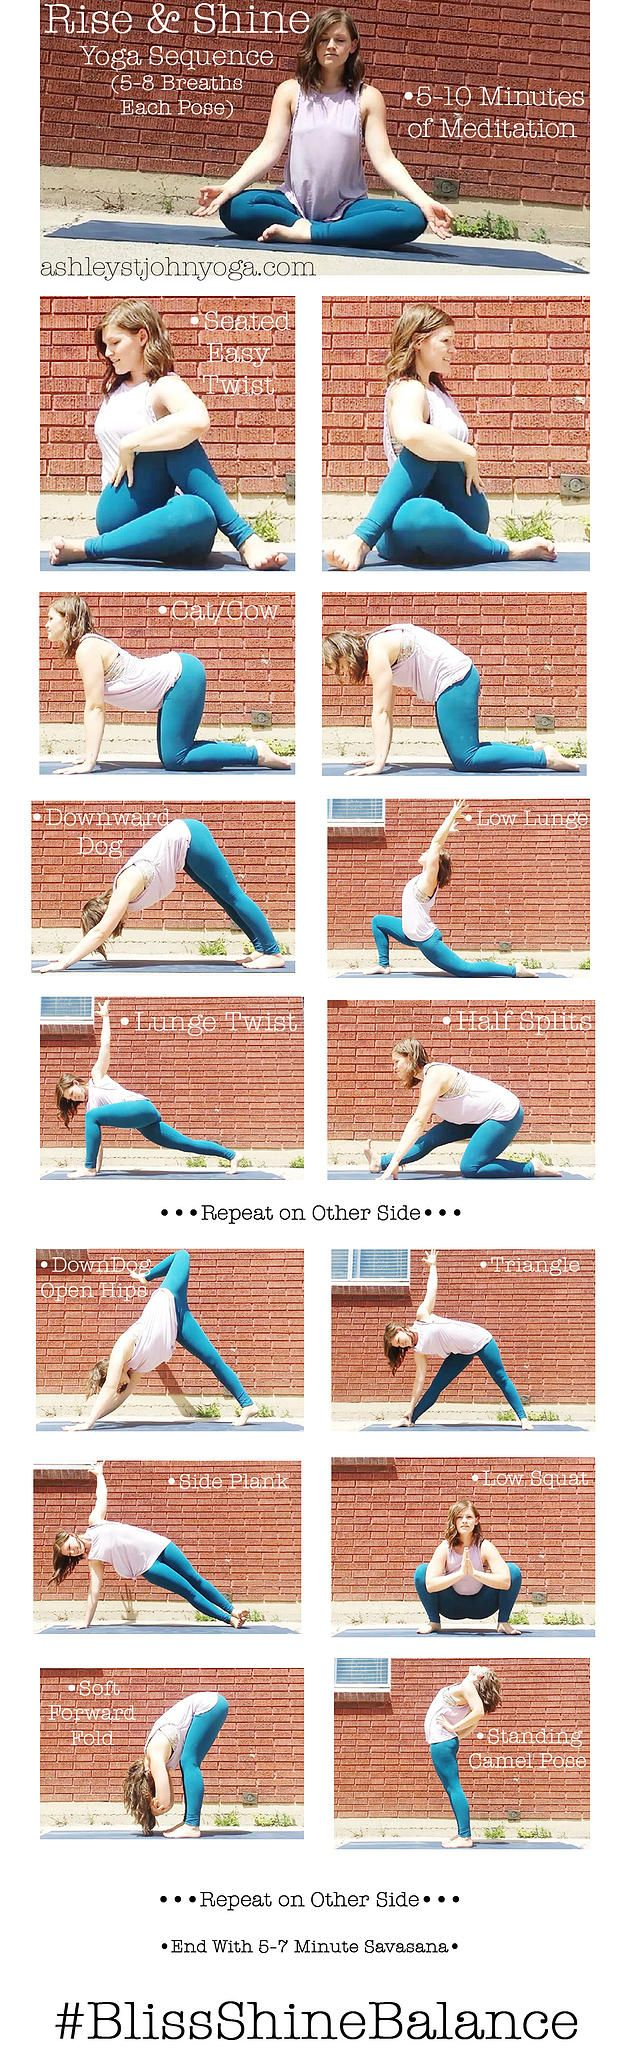 Rise & Shine AM Yoga Sequence ashleystjohnyoga.com – Ideas for Yoga